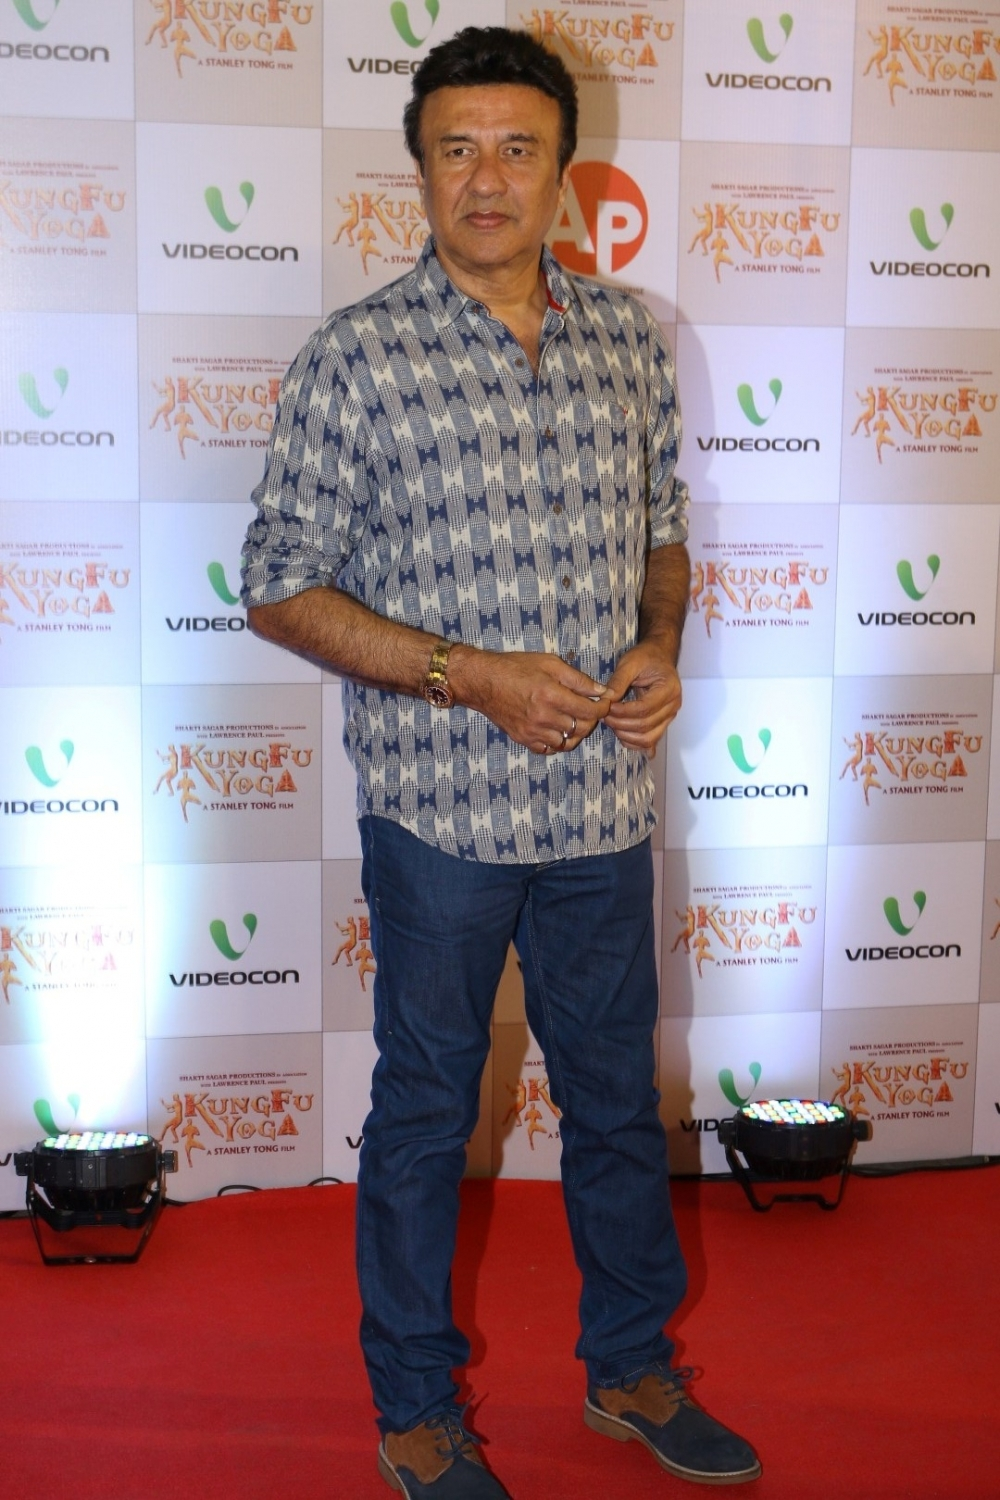 Mumbai: Singer Anu Malik during the screening of film Kung Fu Yoga in Mumbai on Feb 2, 2017. (Photo: IANS)